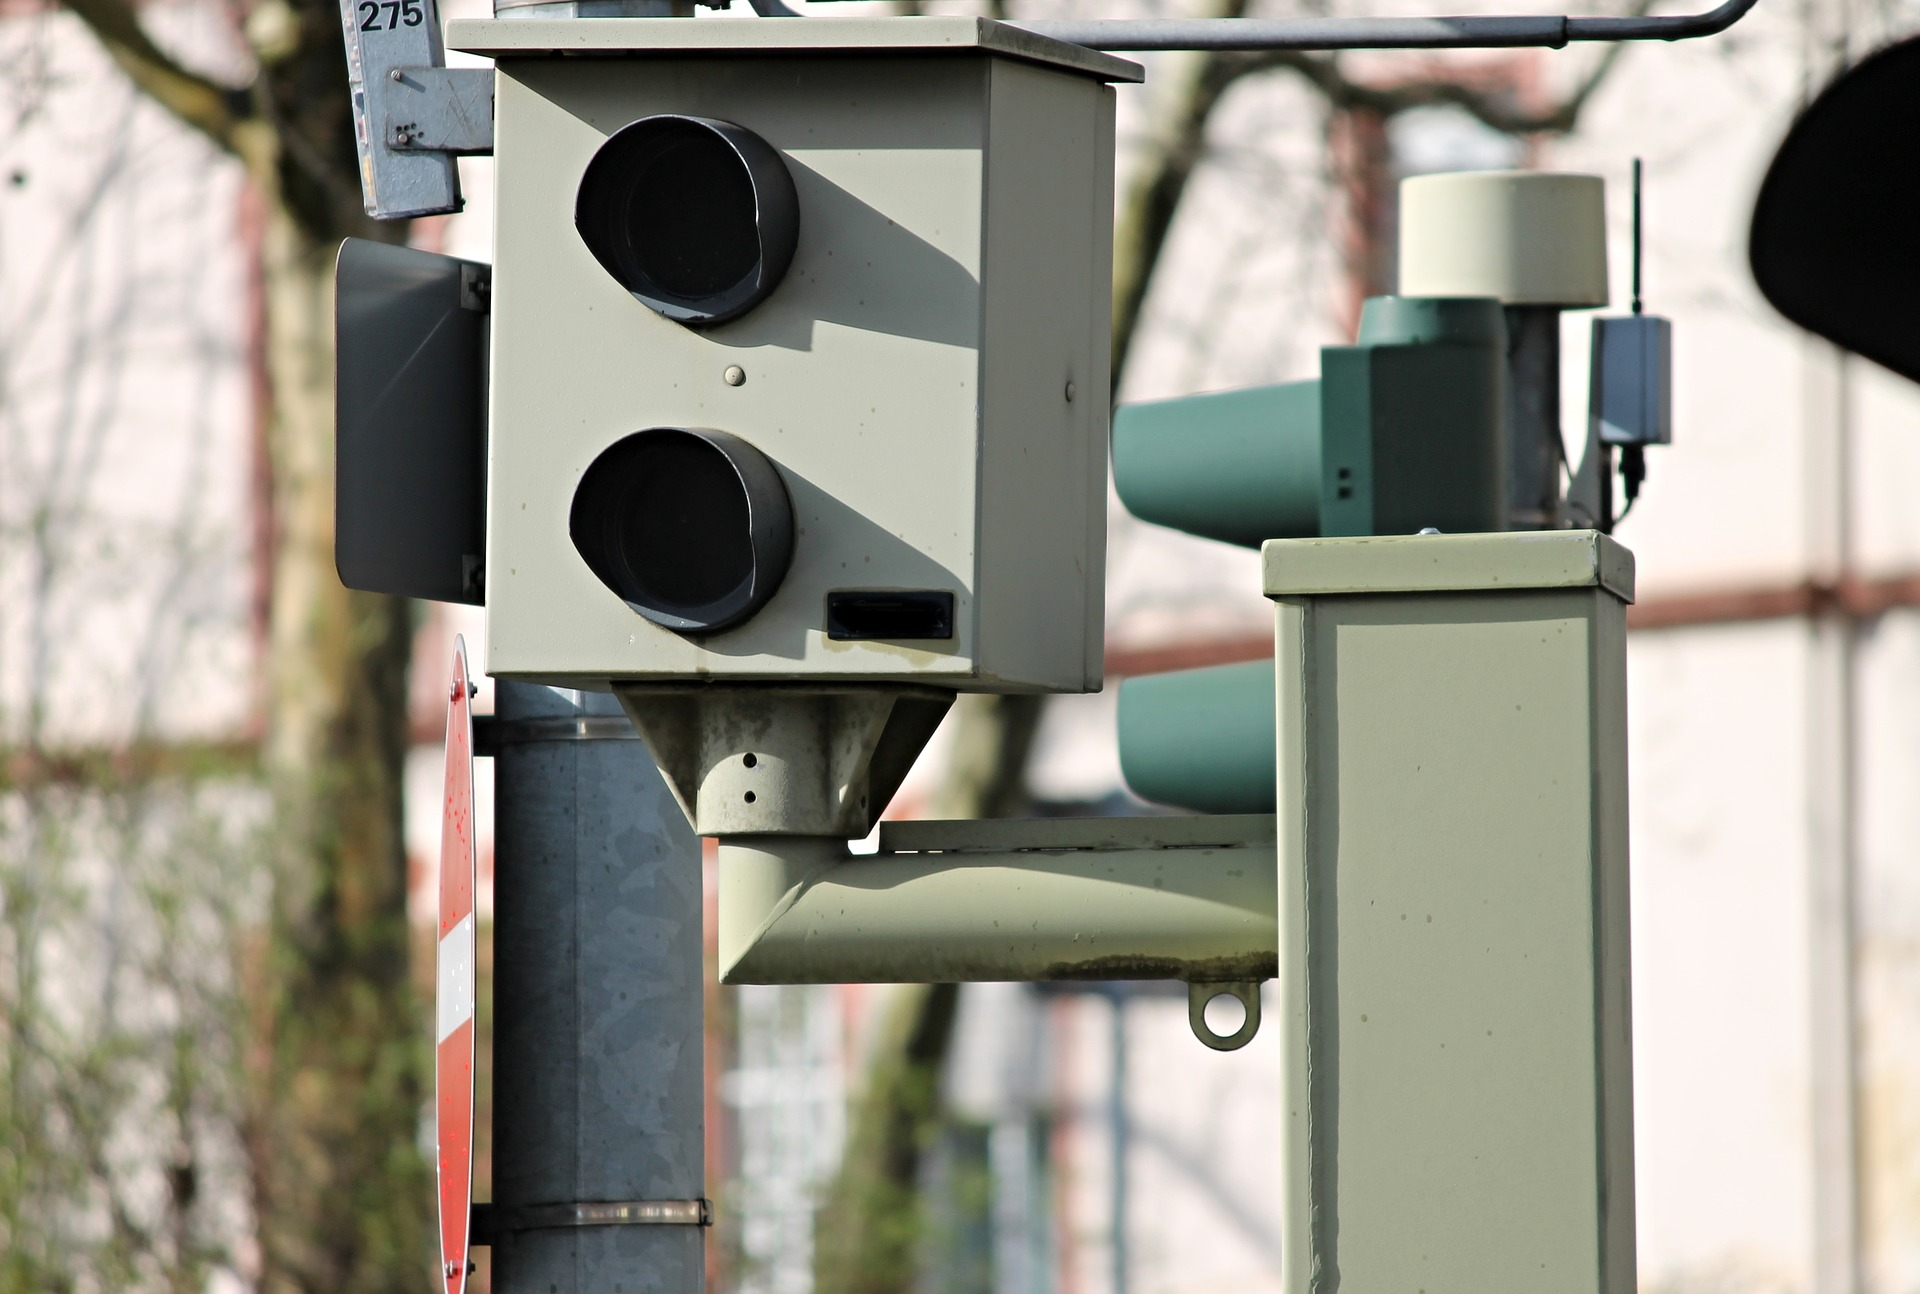 Automatic notification of traffic fines in Spain